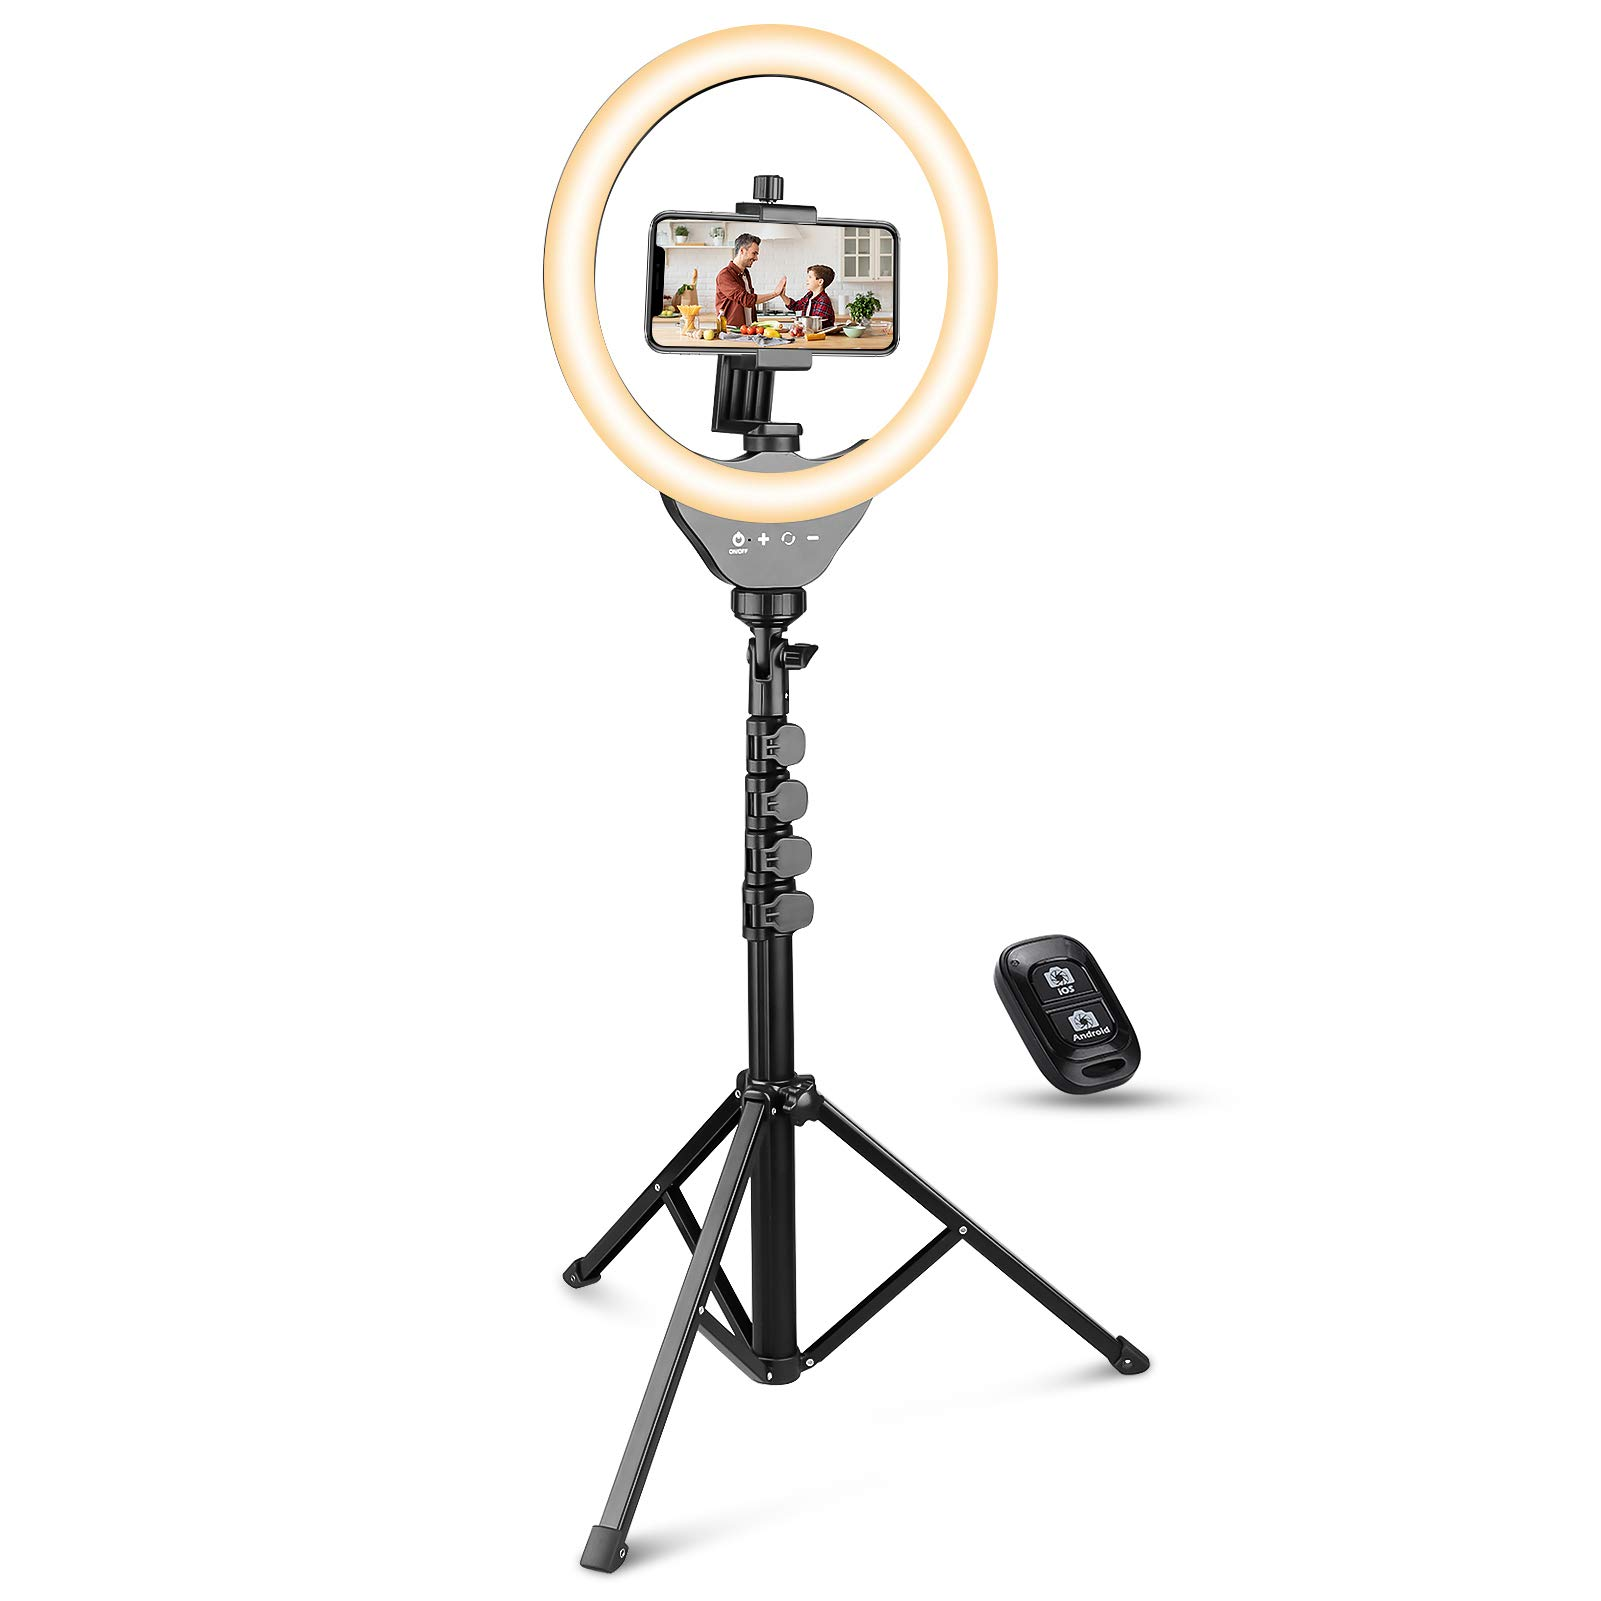 UBeesize 10'' Ring Light with Tripod, Selfie Ring Light with 62'' Tripod Stand, Light Ring for Video Recording & Live Streaming(YouTube, Instagram, Facebook), Compatible with Phones and Cameras